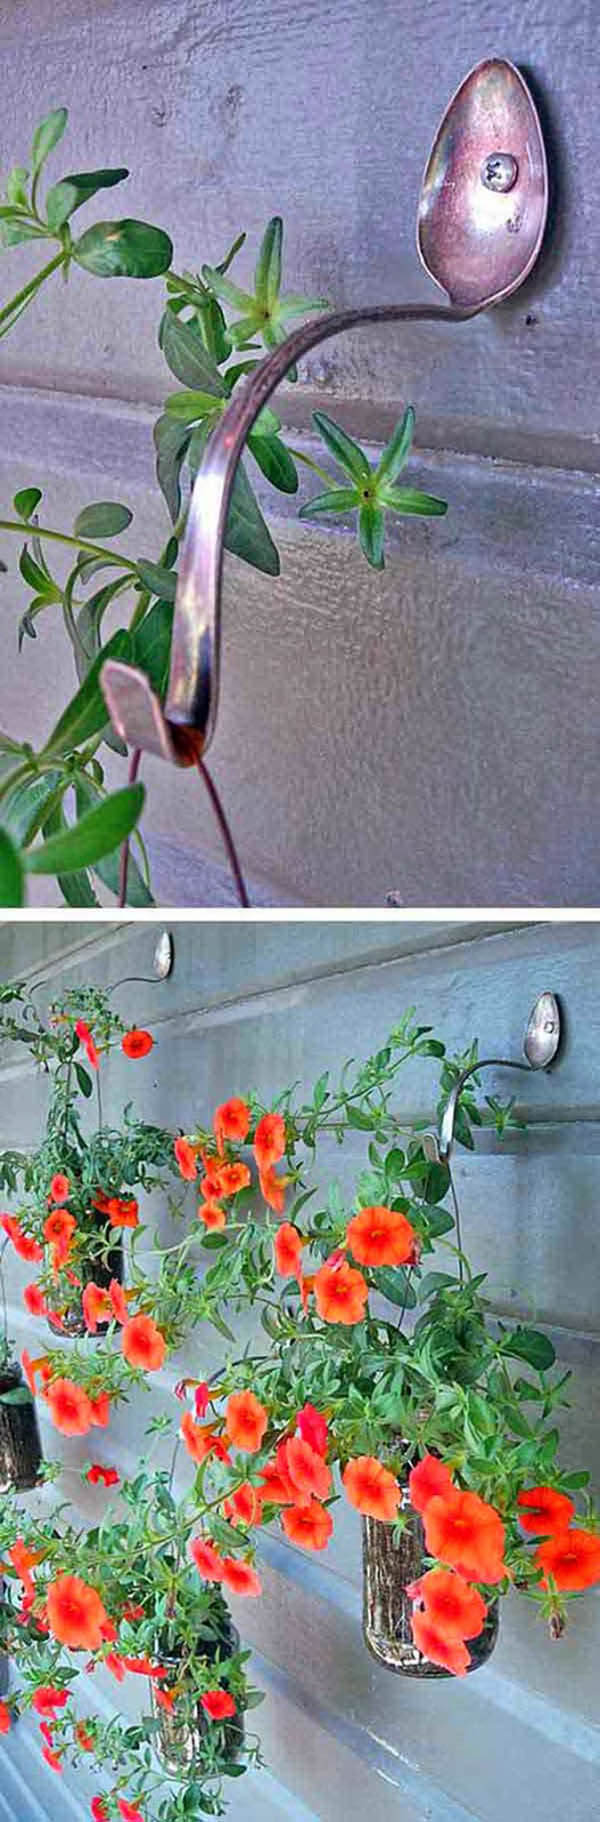 Vintage Garden Decor Ideas: Vintage Spoon Hanging Basket Hooks